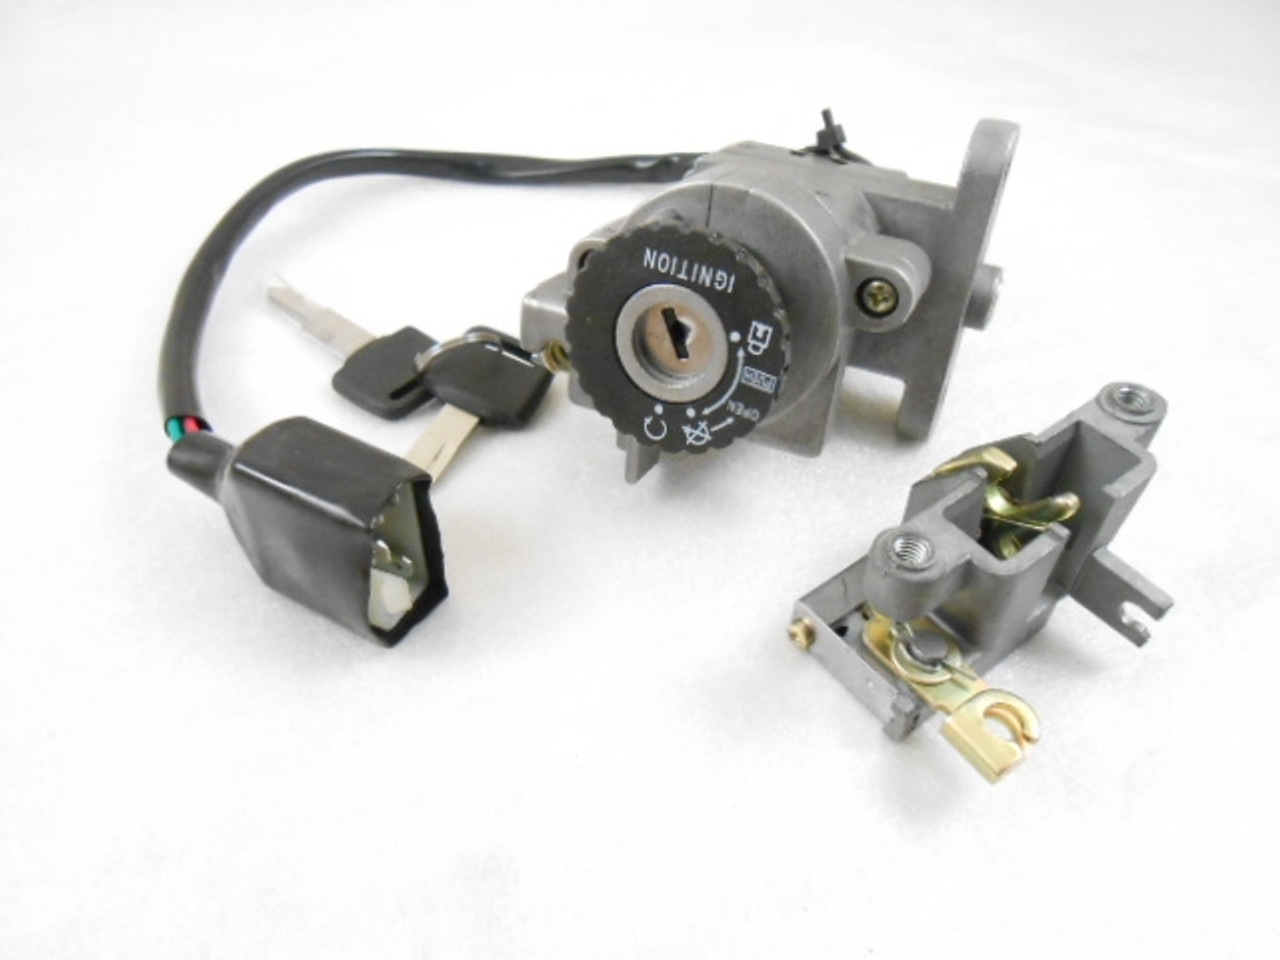 ignition switch/key 11052-a59-8